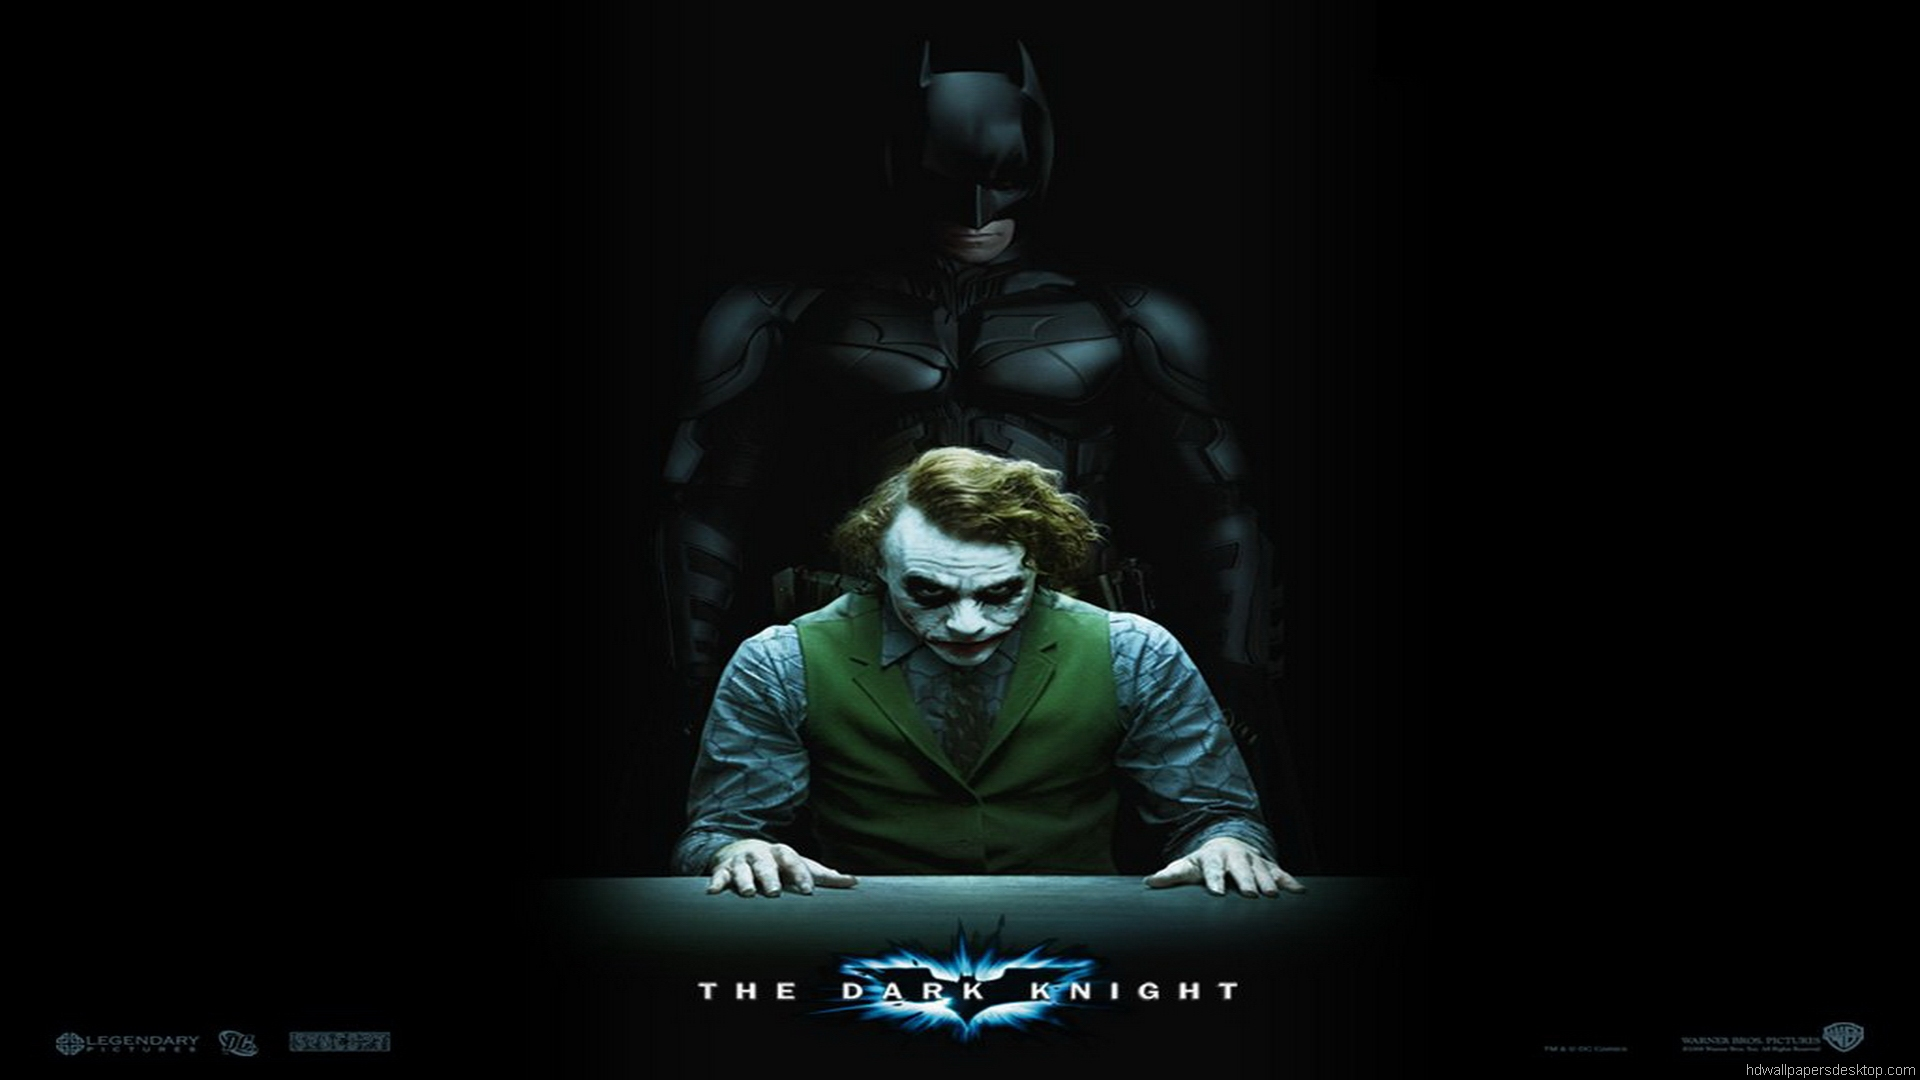 70+] Dark Knight Hd Wallpaper on WallpaperSafari